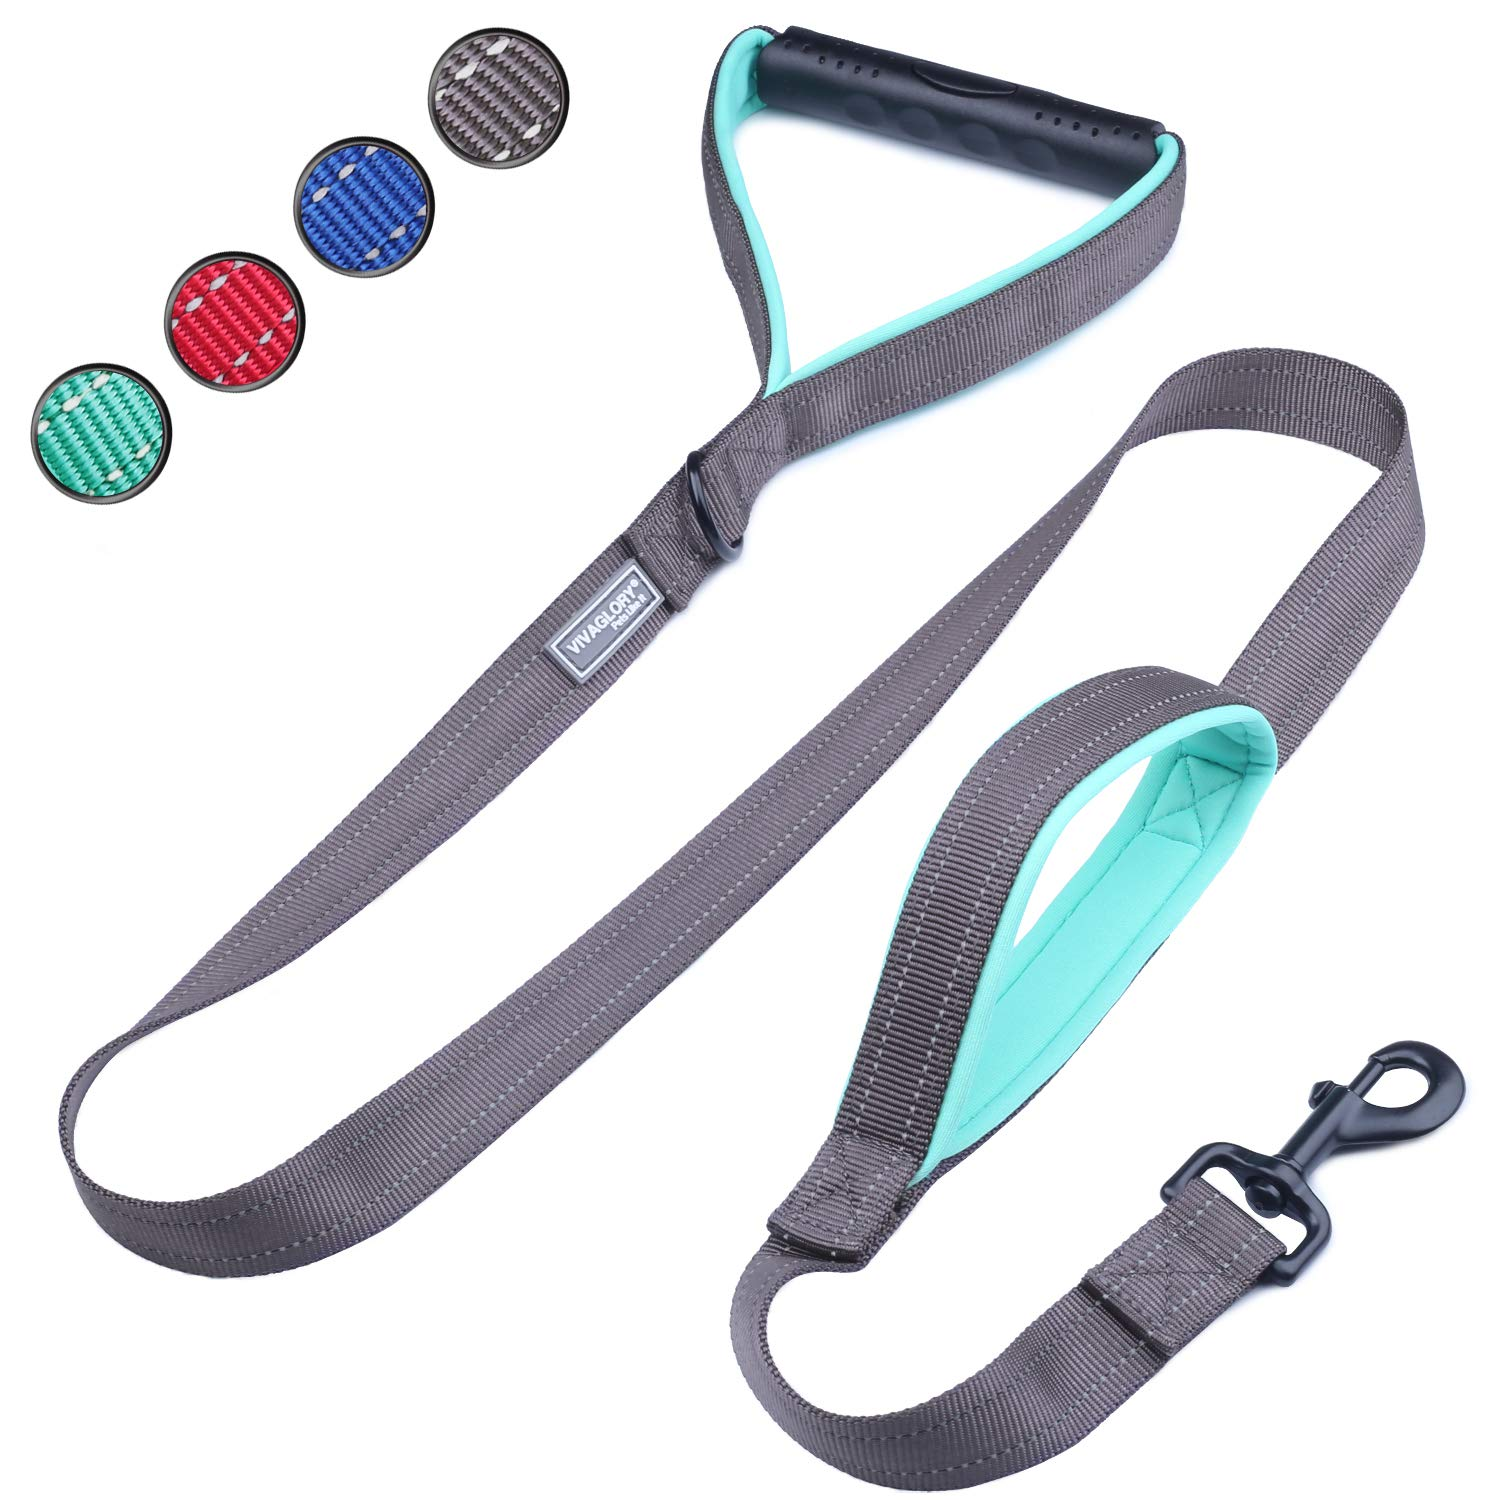 VIVAGLORY Dog Training Leash with 2 Padded Handles, Heavy Duty 6ft Long Reflective Safety Traffic Handle Leash Walking Lead for Medium to Large Dogs, Grey by VIVAGLORY